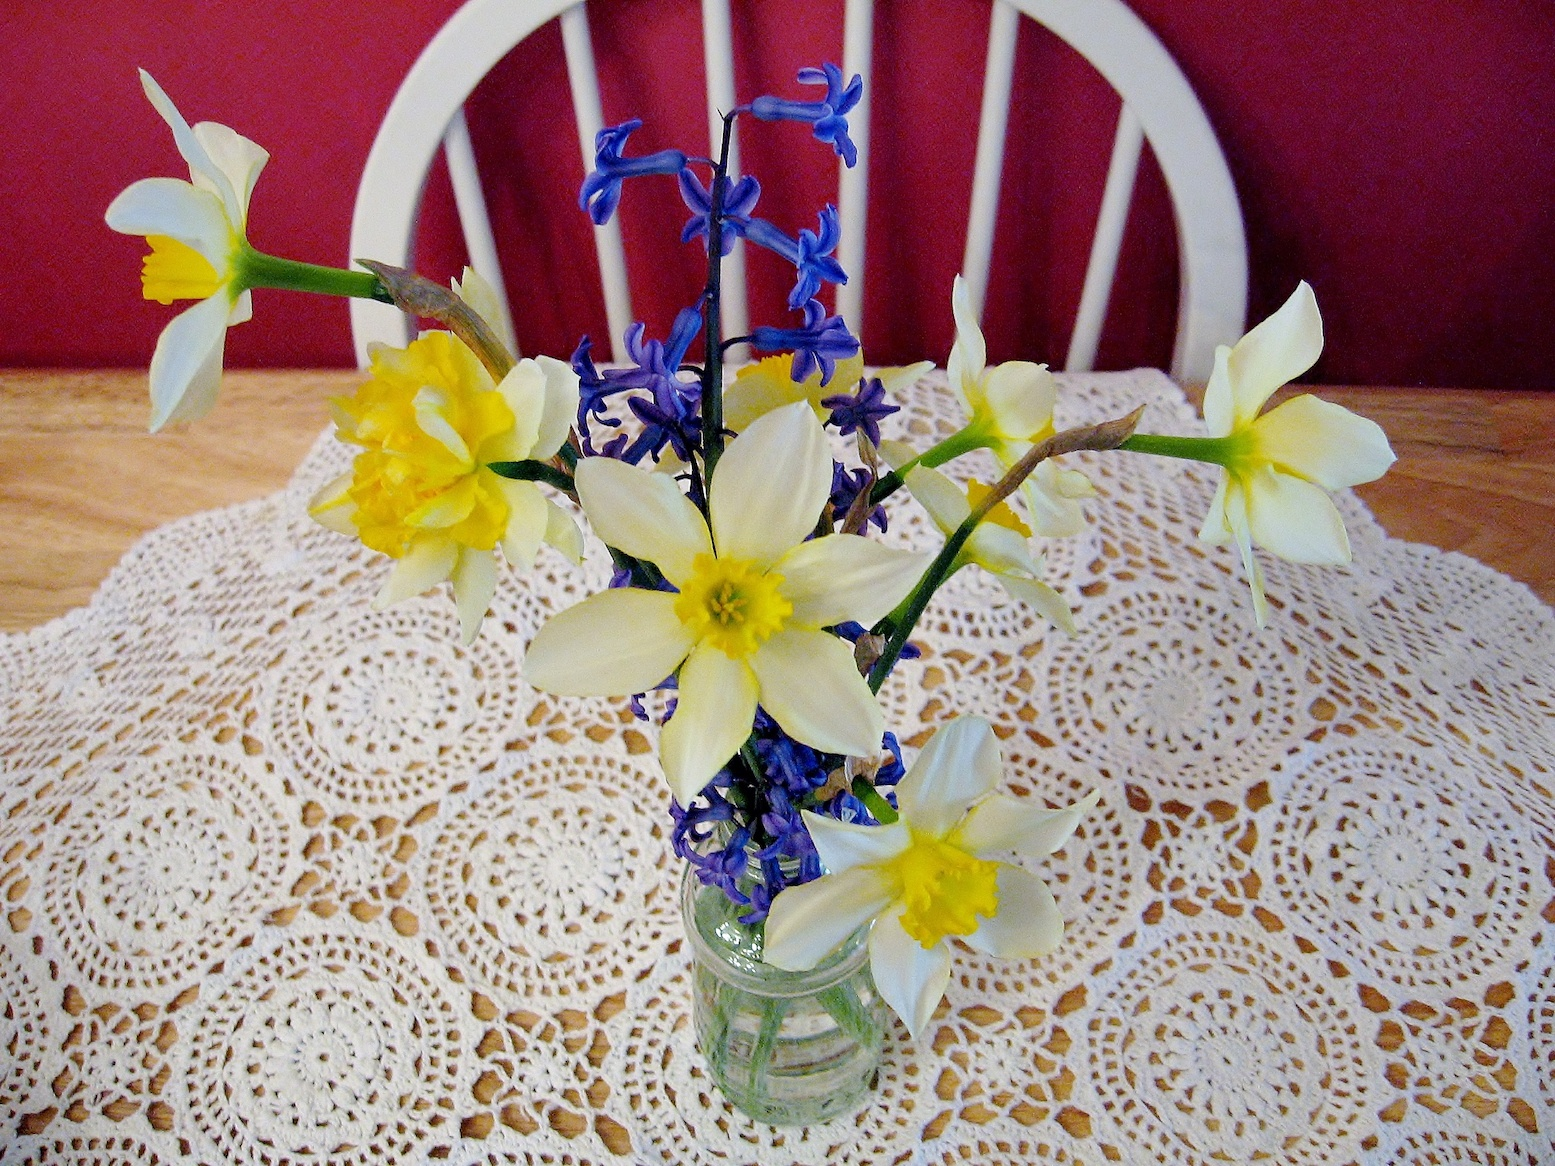 Daffodils and Hyacinth with Lace table cloth